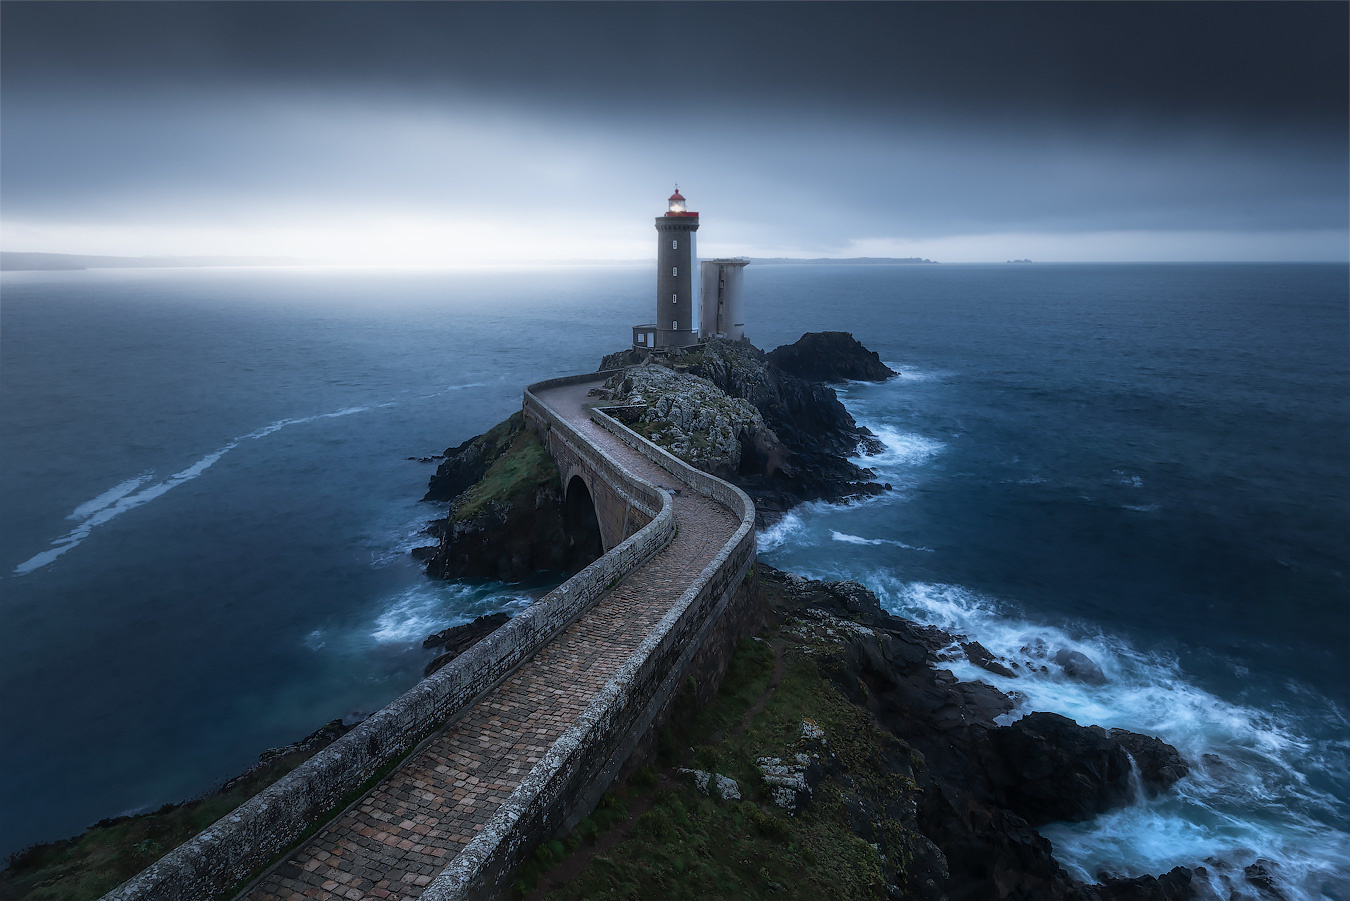 Morning blues in Brittany by Kevin Teerlynck